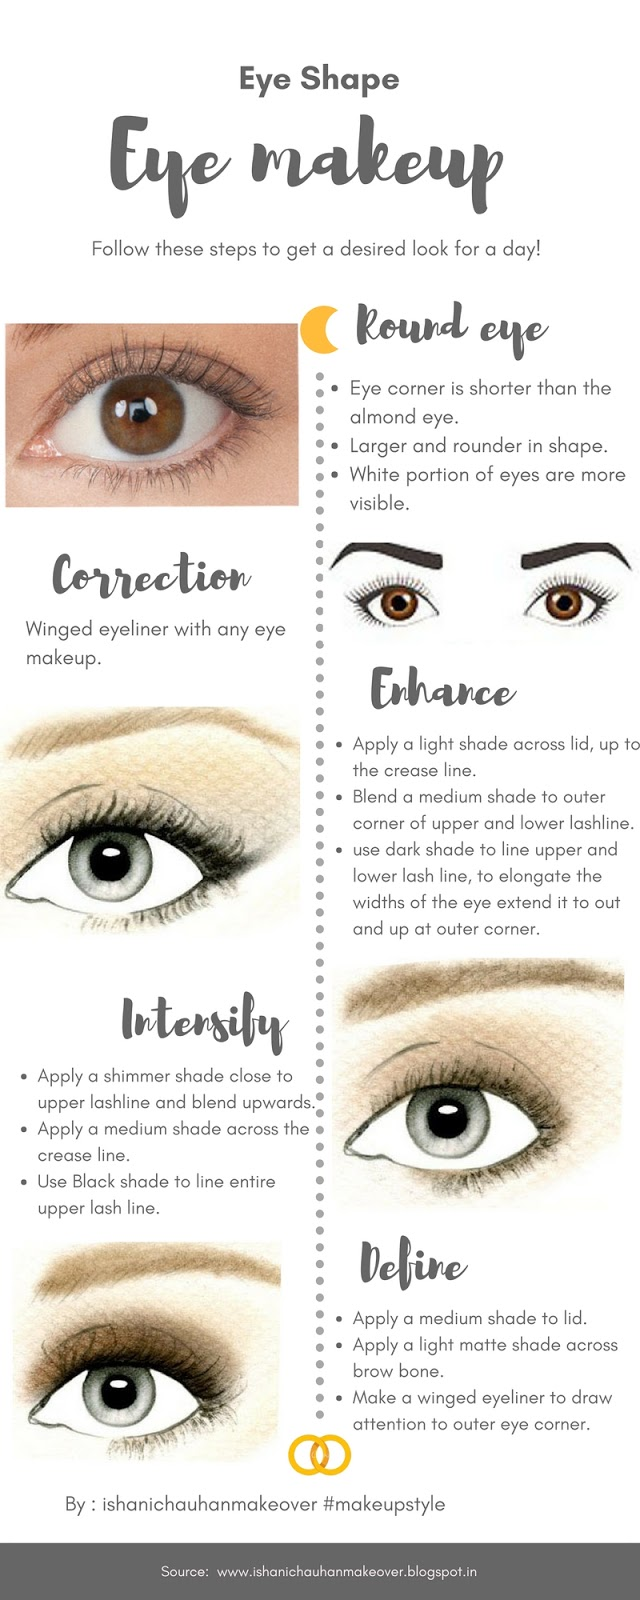 Makeup for round eyes